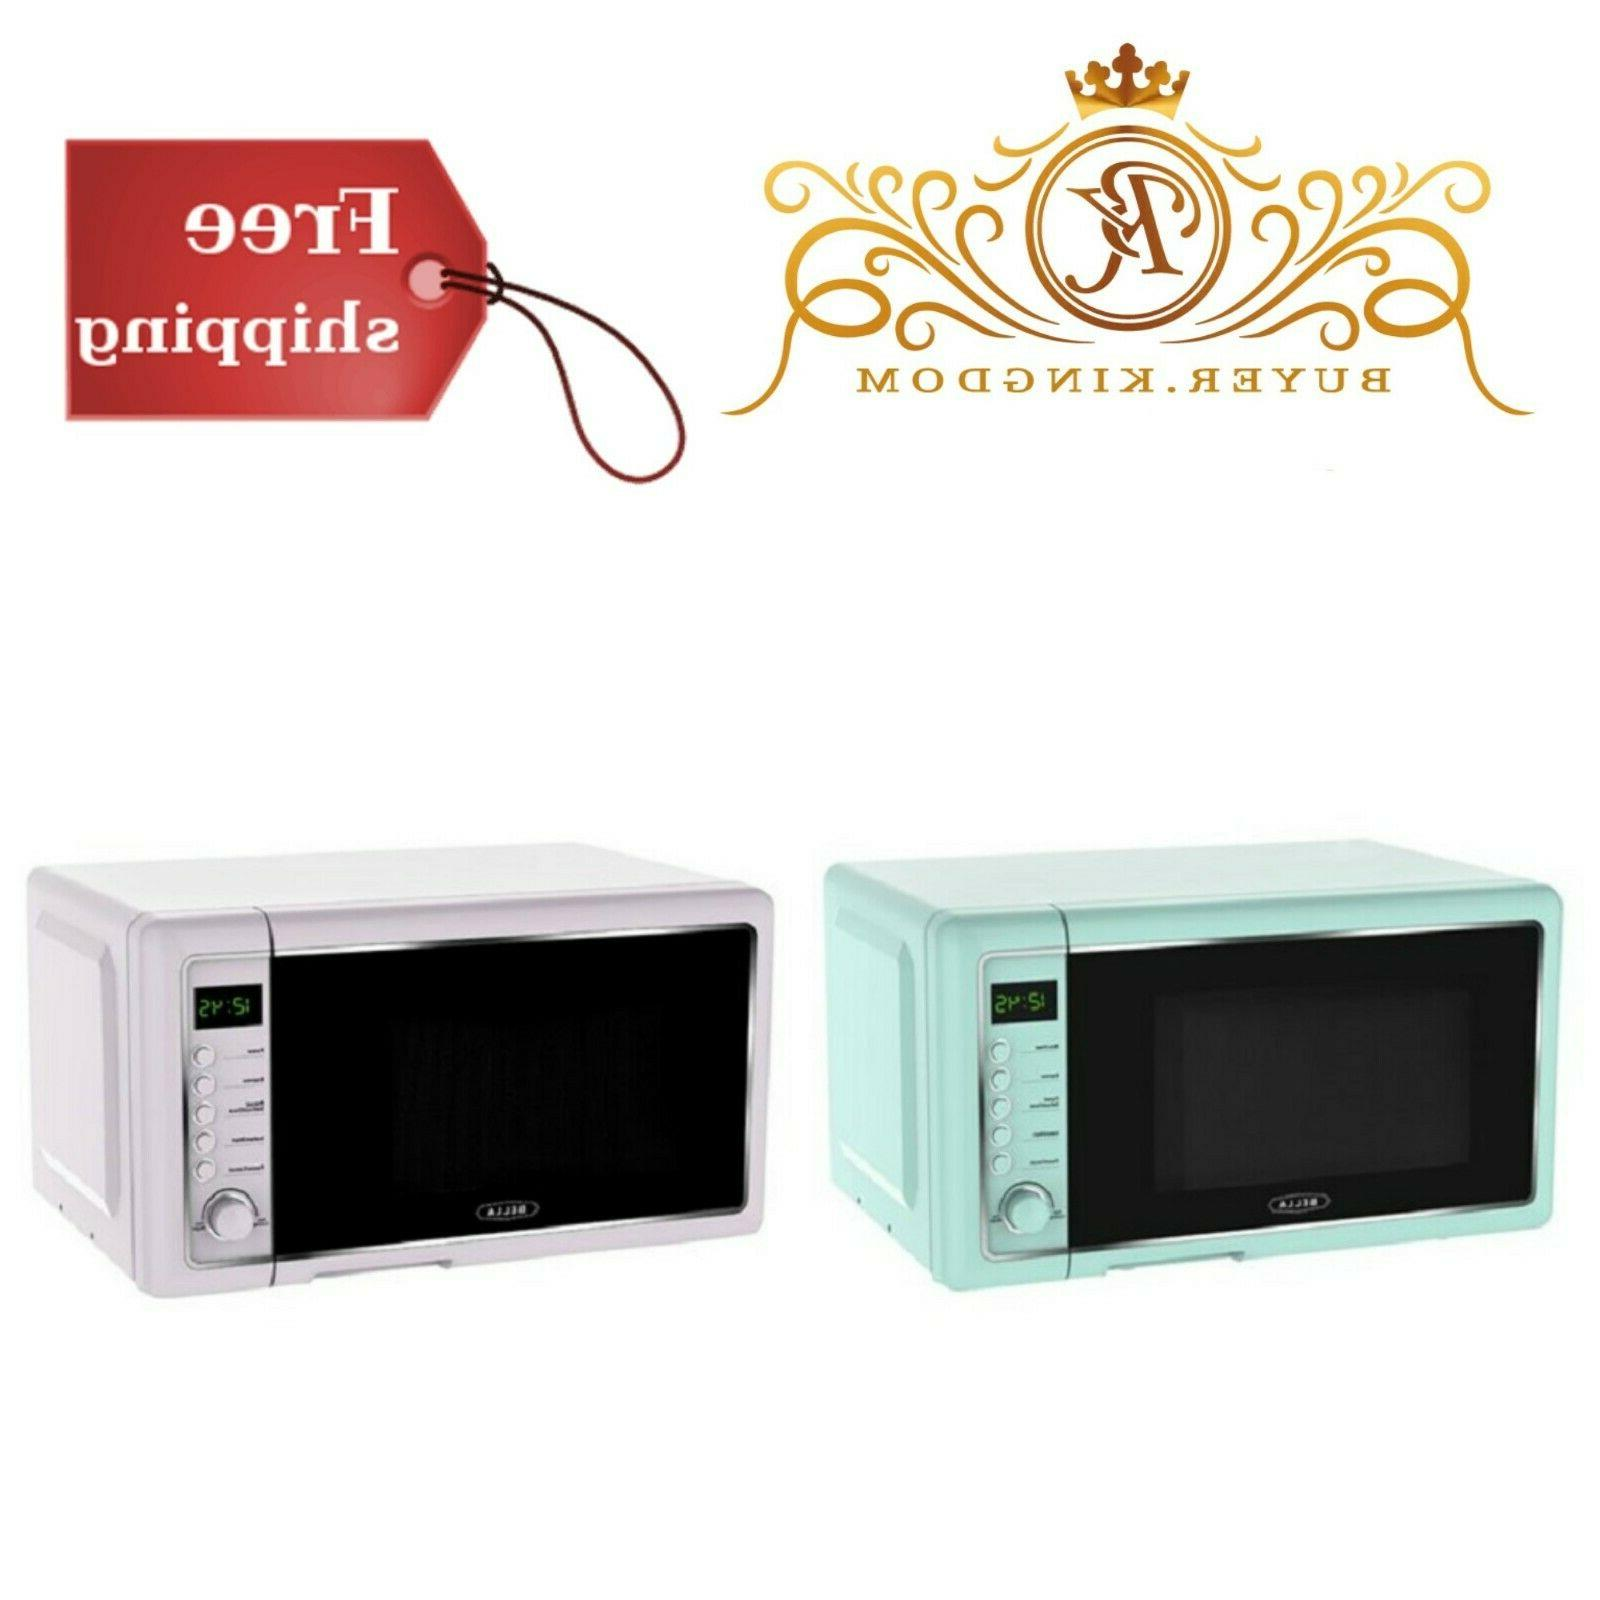 Compact Countertop Stylish Microwave Oven With Express Cook